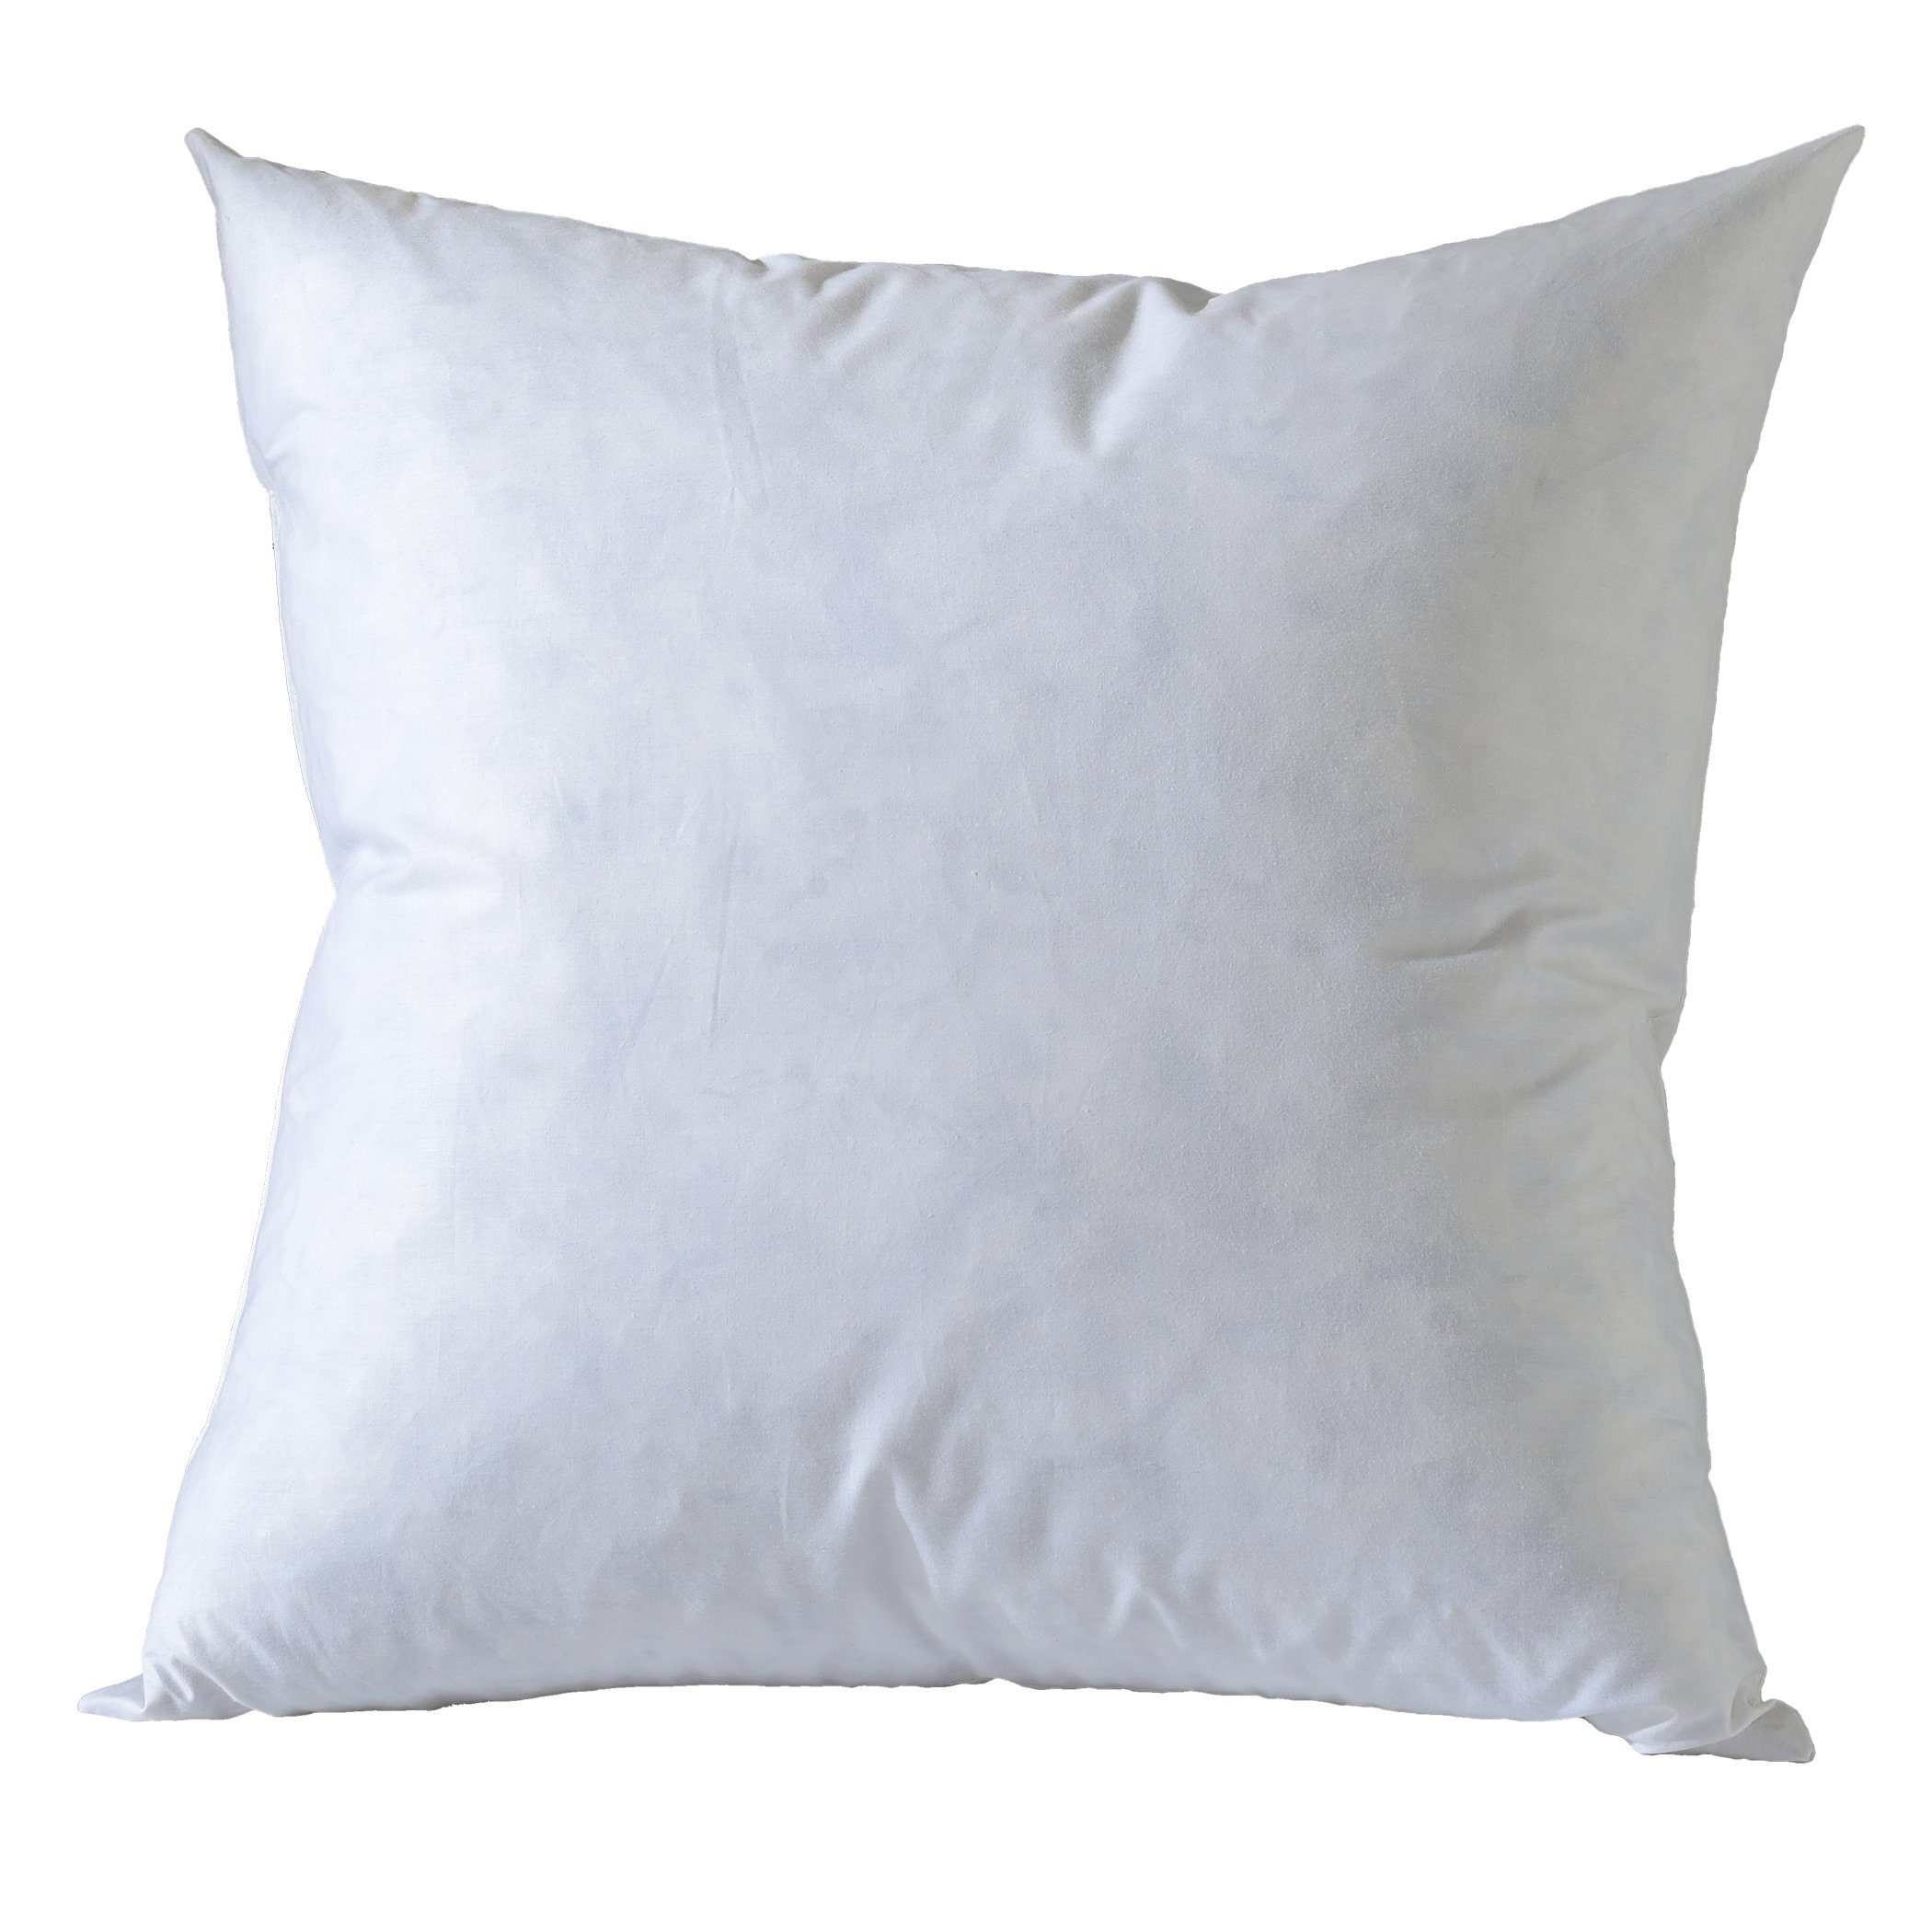 Home Basic 26x26 euro down feather Pillow Inserts-100% Cotton Fabric- White